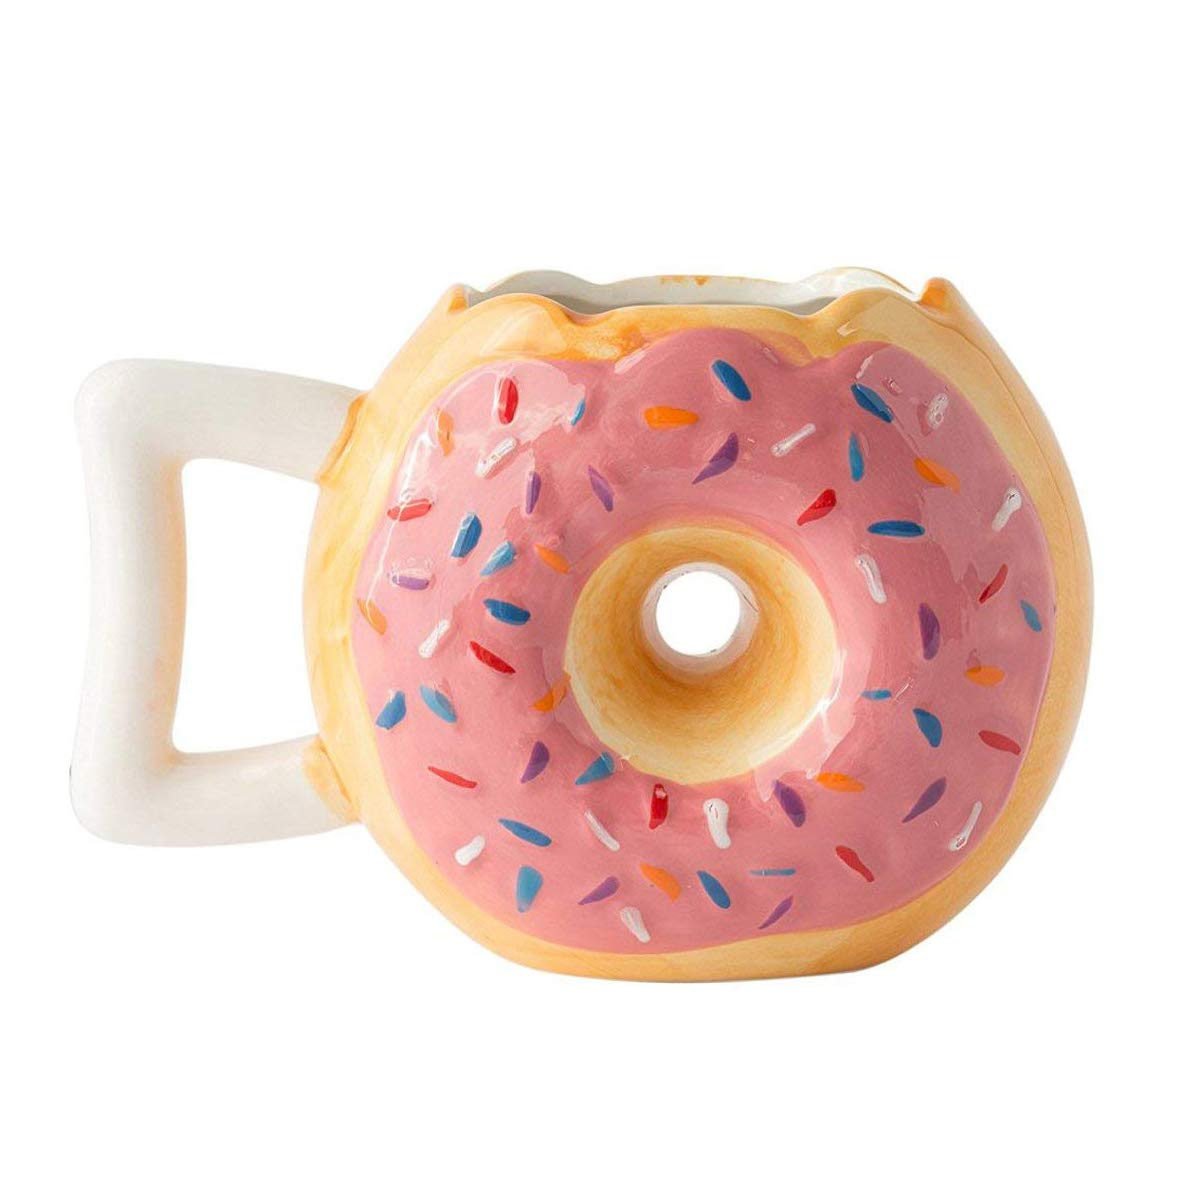 "ویکالا · خرید  اصل اورجینال · خرید از آمازون · Ceramic Donut Mug - Delicious Pink Glaze Doughnut with Sprinkles - Funny""MMM. Donuts!"" Quote - Best Cup For Coffee, Tea, Hot Chocolate and More - Large 14 oz - Funny Coffee Mug Gift wekala · ویکالا"